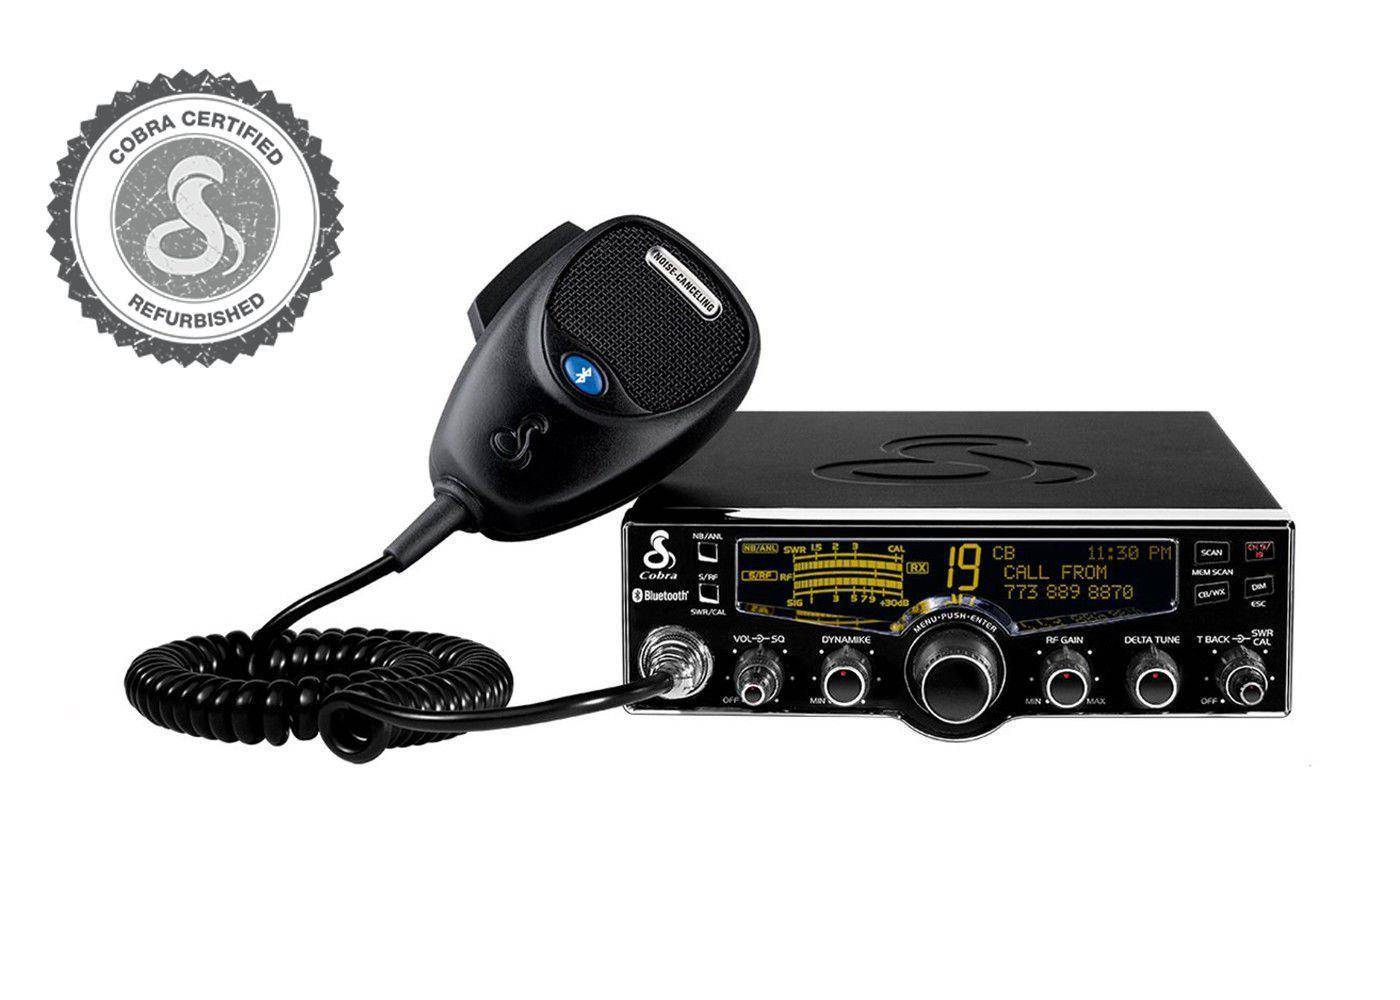 Cobra 29 LX BT (Refurb) Professional CB Radio Bluetooth Enabled